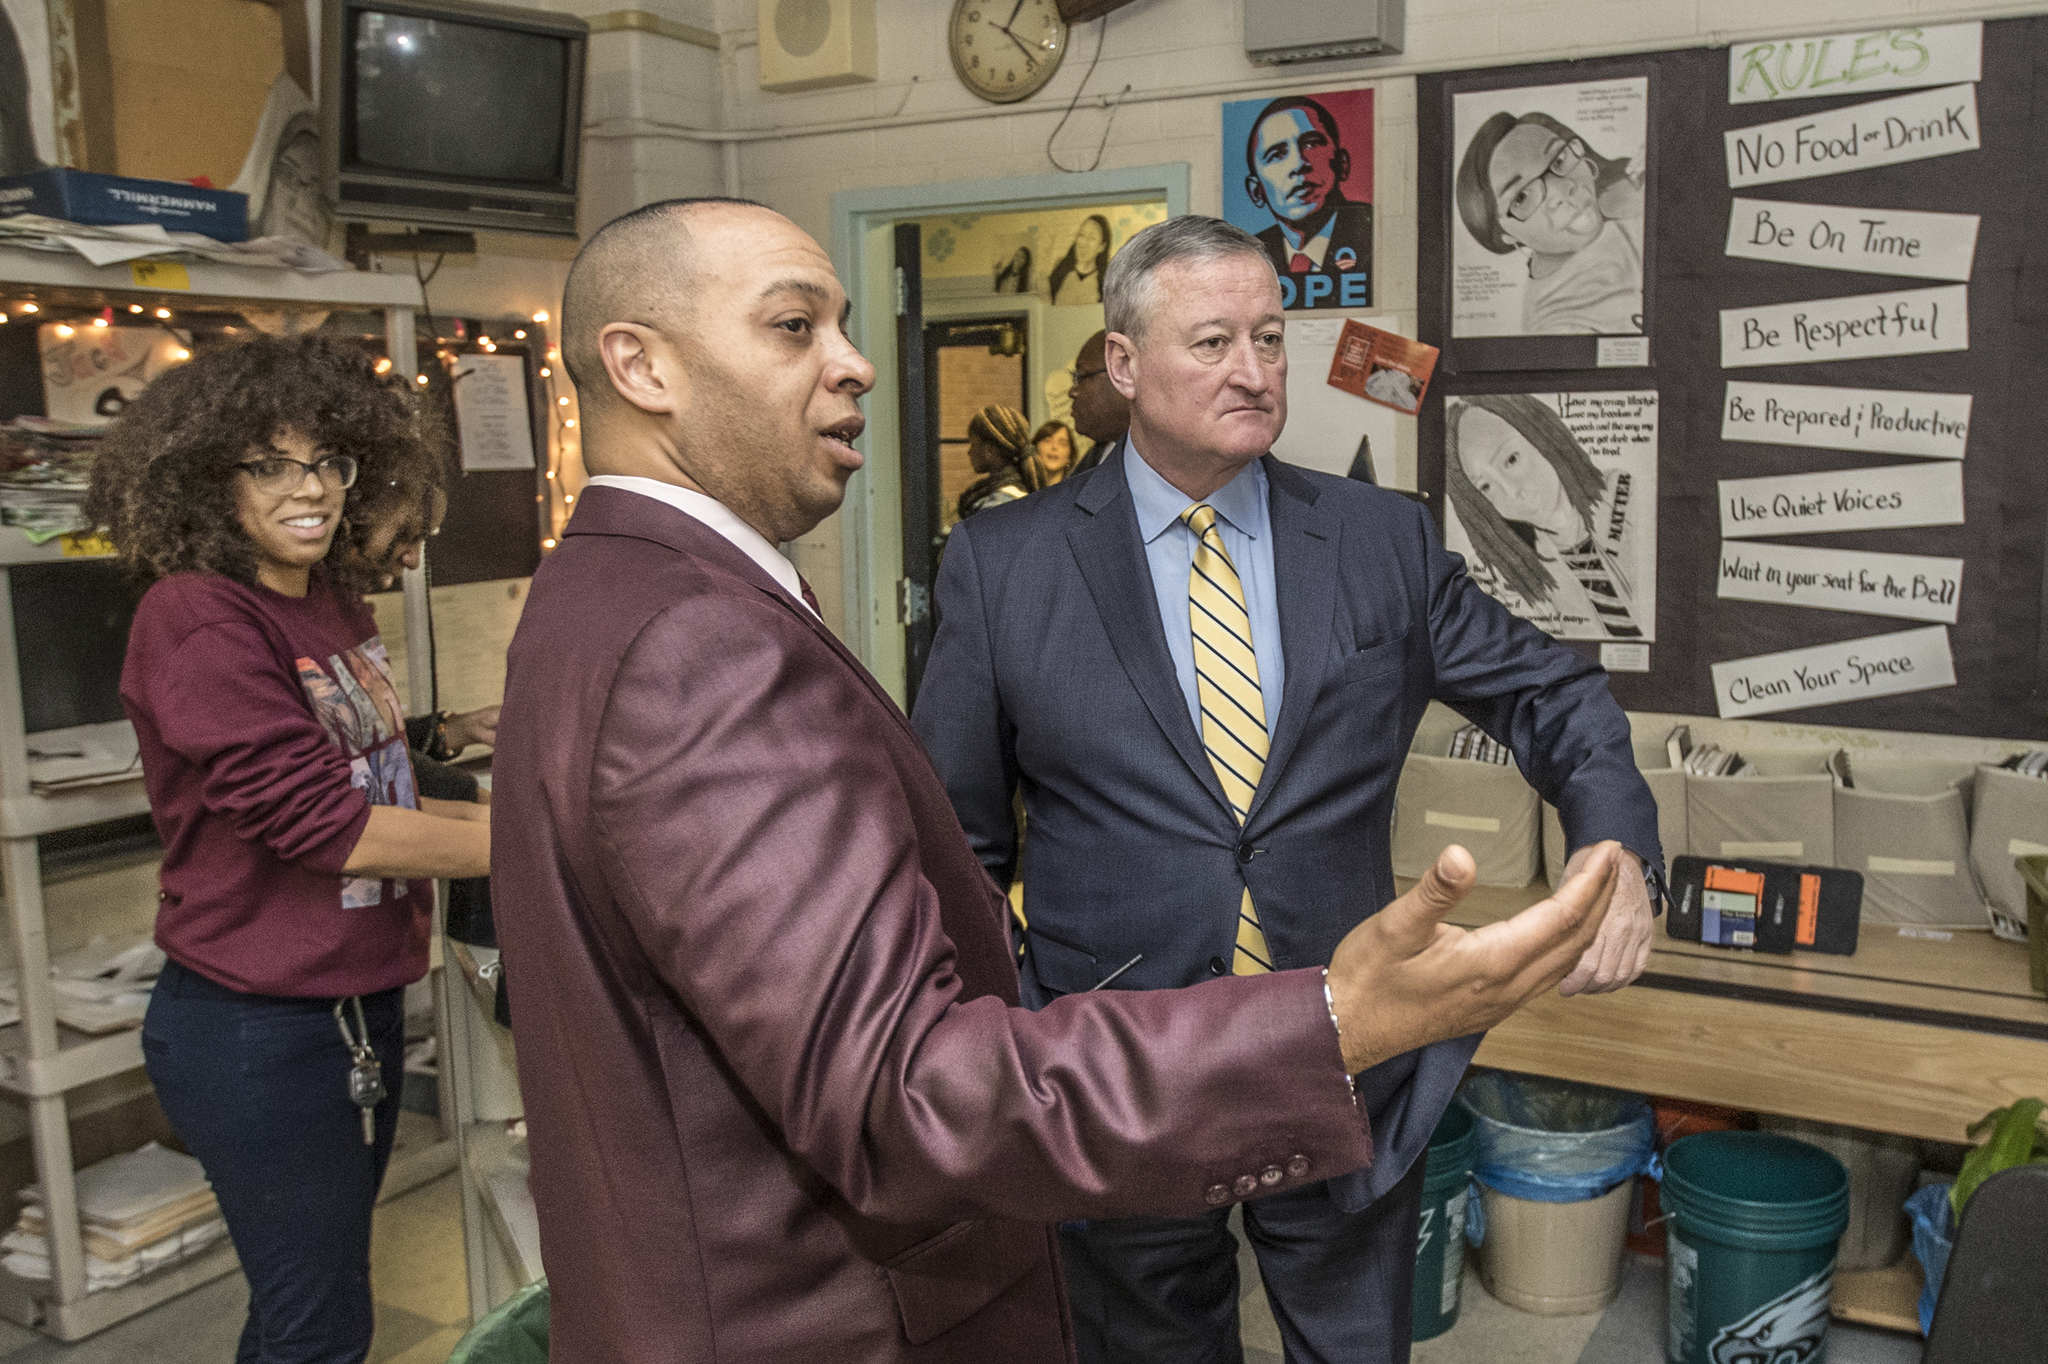 Paul Robeson High School principal Richard M. Gordon IV, (left) gives Philadelphia Mayor Jim Kenney, a tour of the schools art classroom during his visit on Tuesday December 12, 2017. Paul Robeson High School was named the most improved school in the city earlier this year and Principal Richard M. Gordon, IV, was named the countryÕs top administrator by a national online education journal.